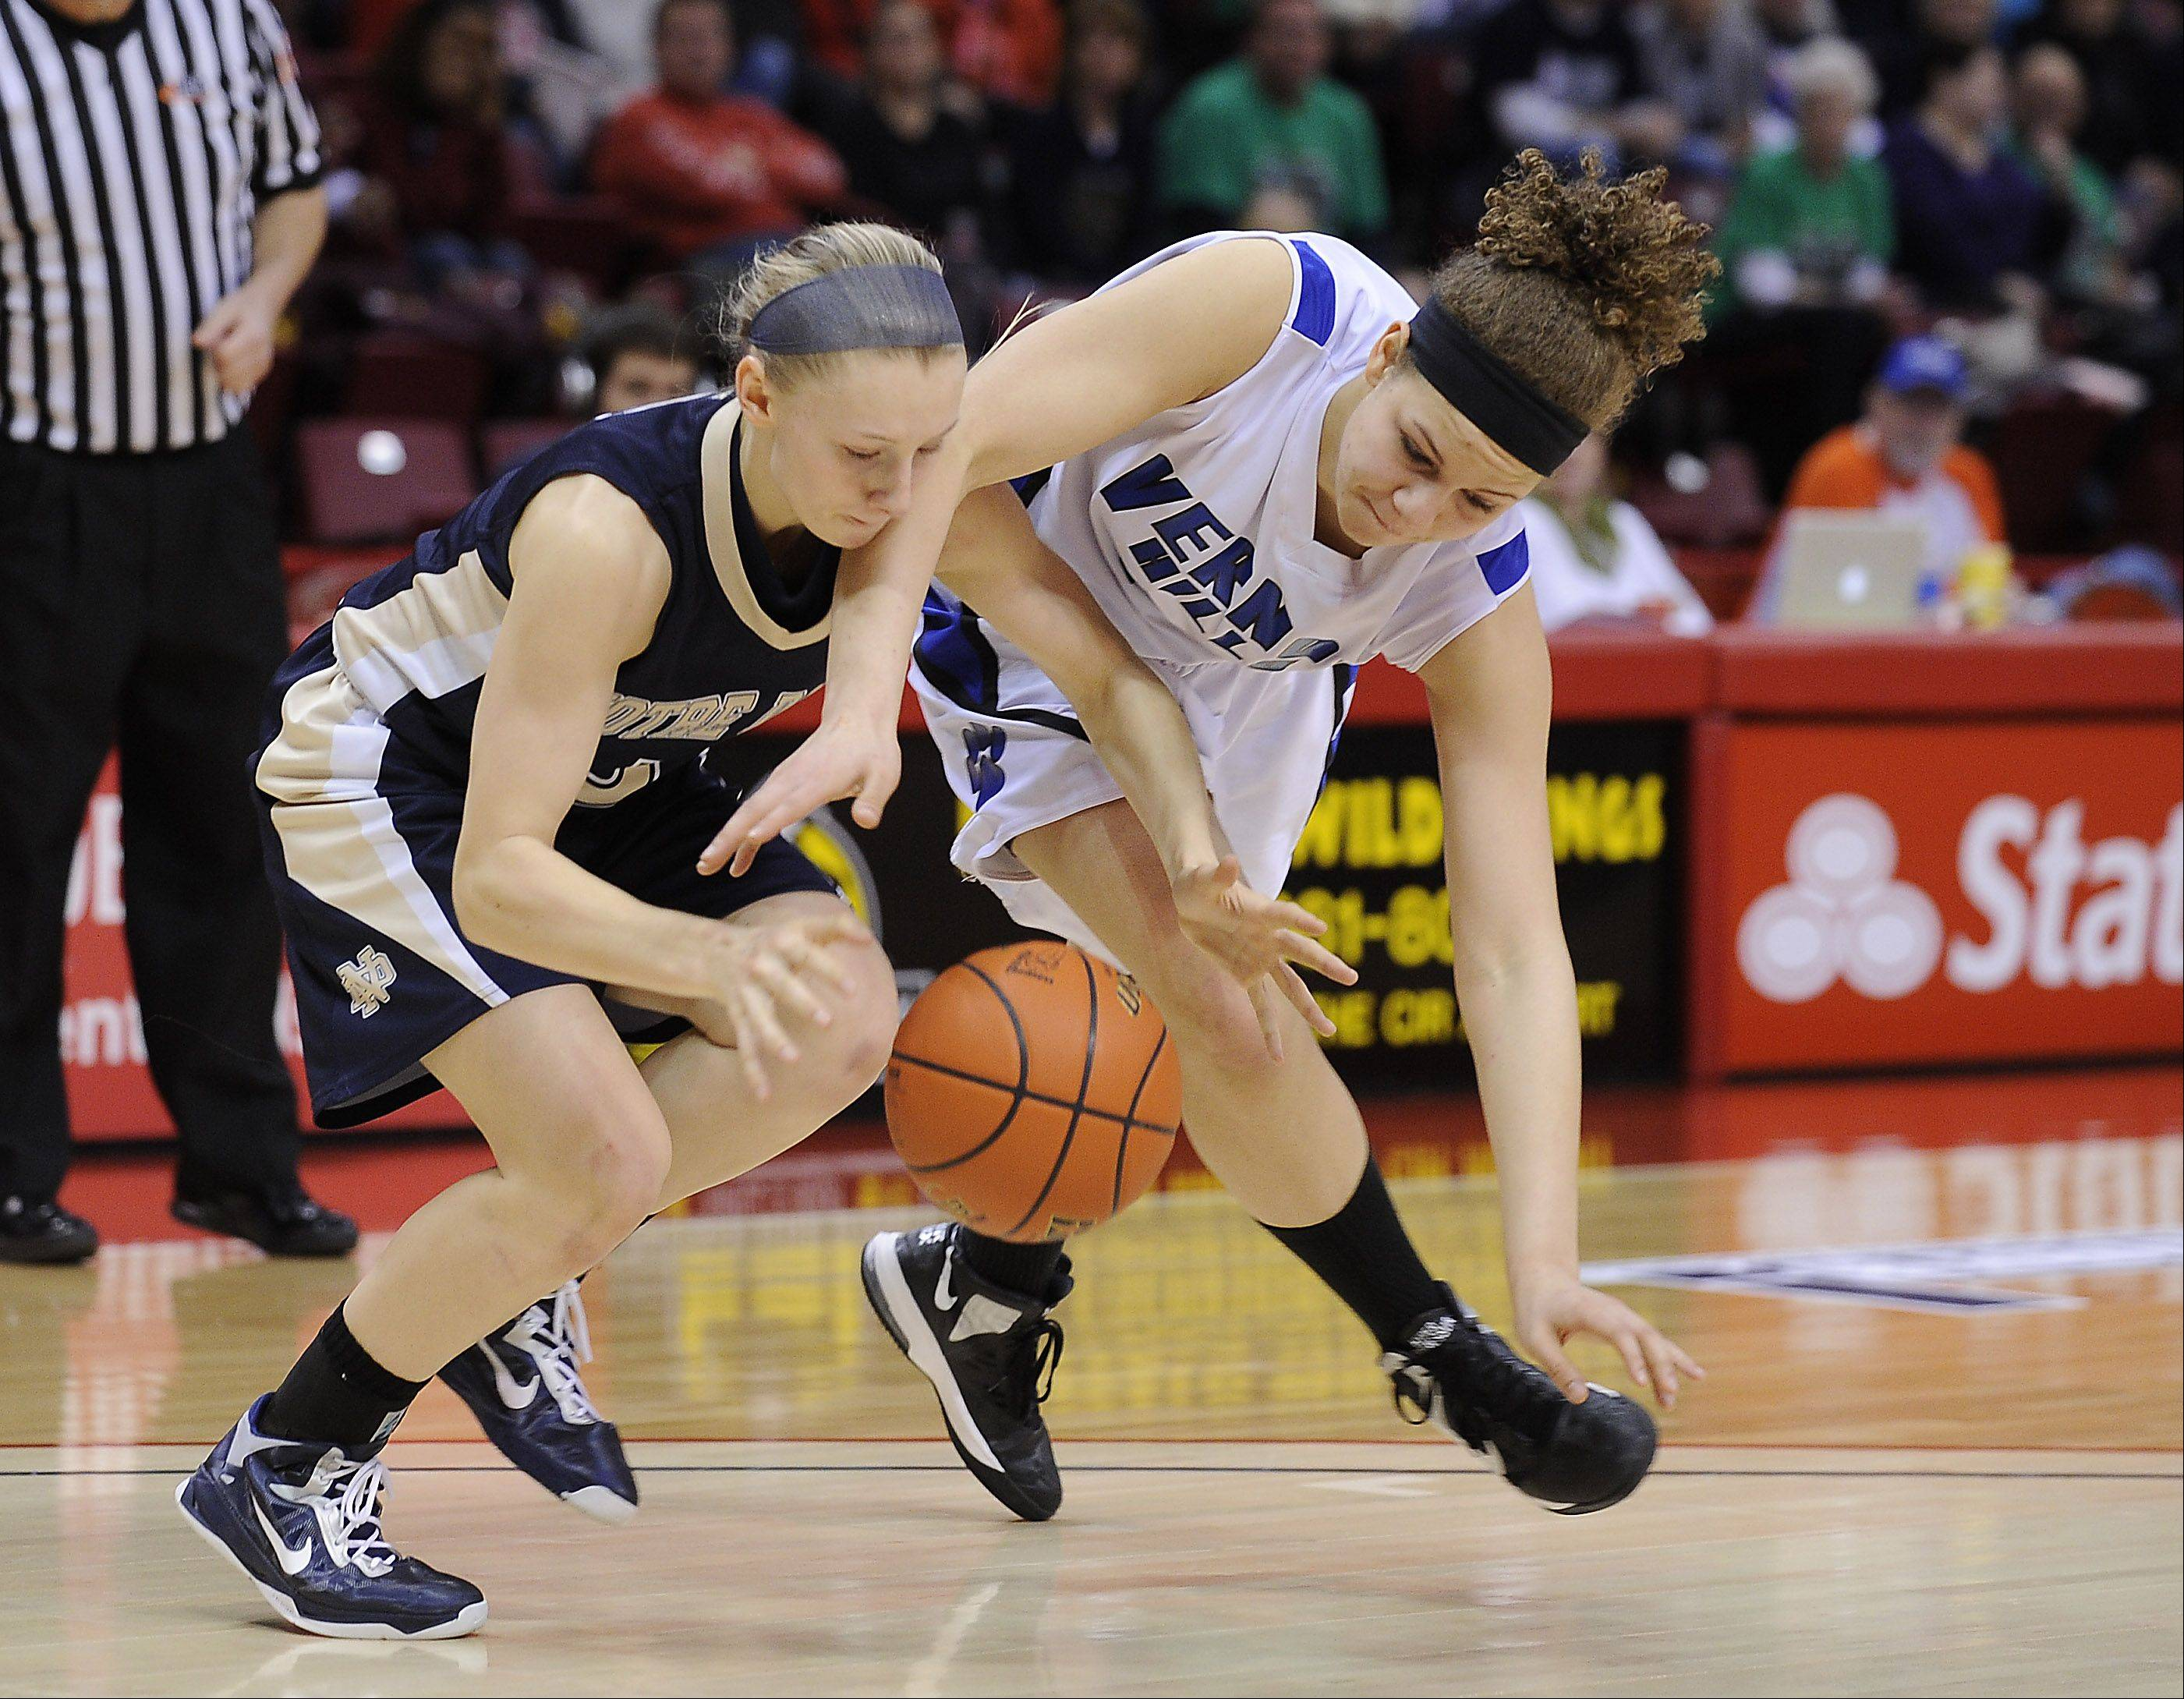 Vernon Hills' Brie Bahlmann and Quincy's Kristen Gengenbacher battle for a loose ball during the 3A Class state girls basketball championship game in Normal on Saturday.